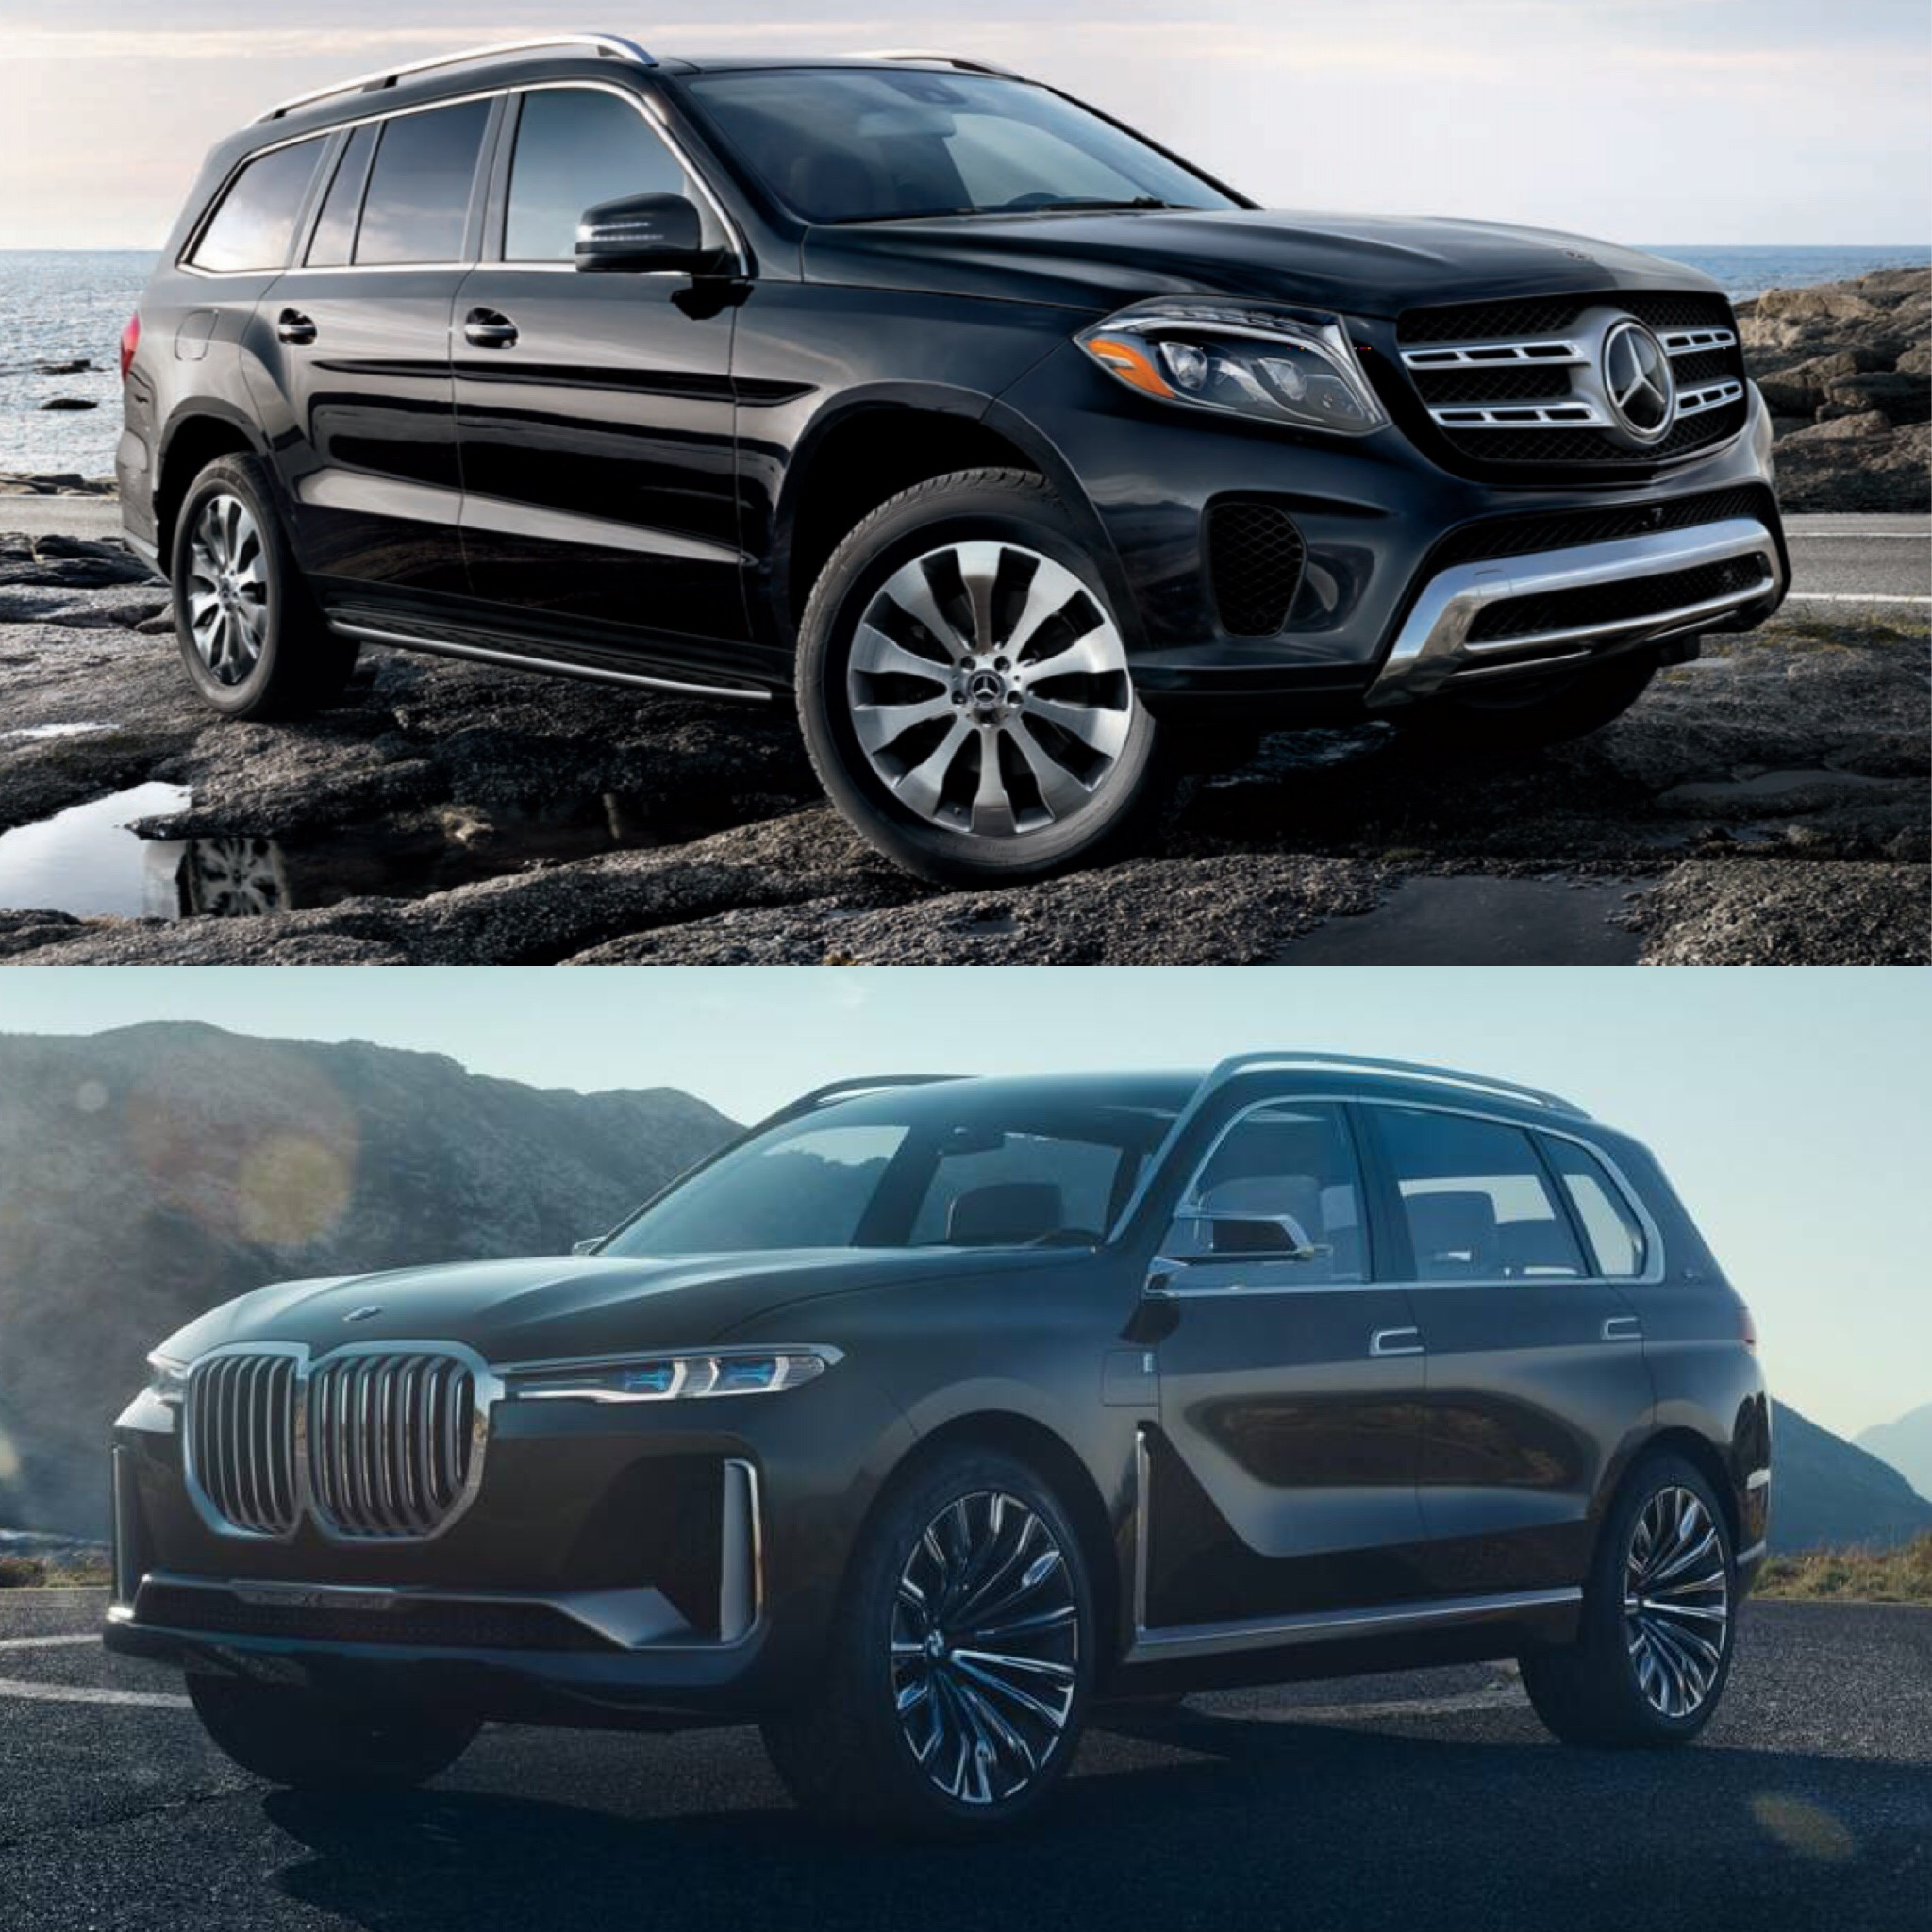 The Mercedes-Benz GLS (top) and the BMW X7 (bottom)